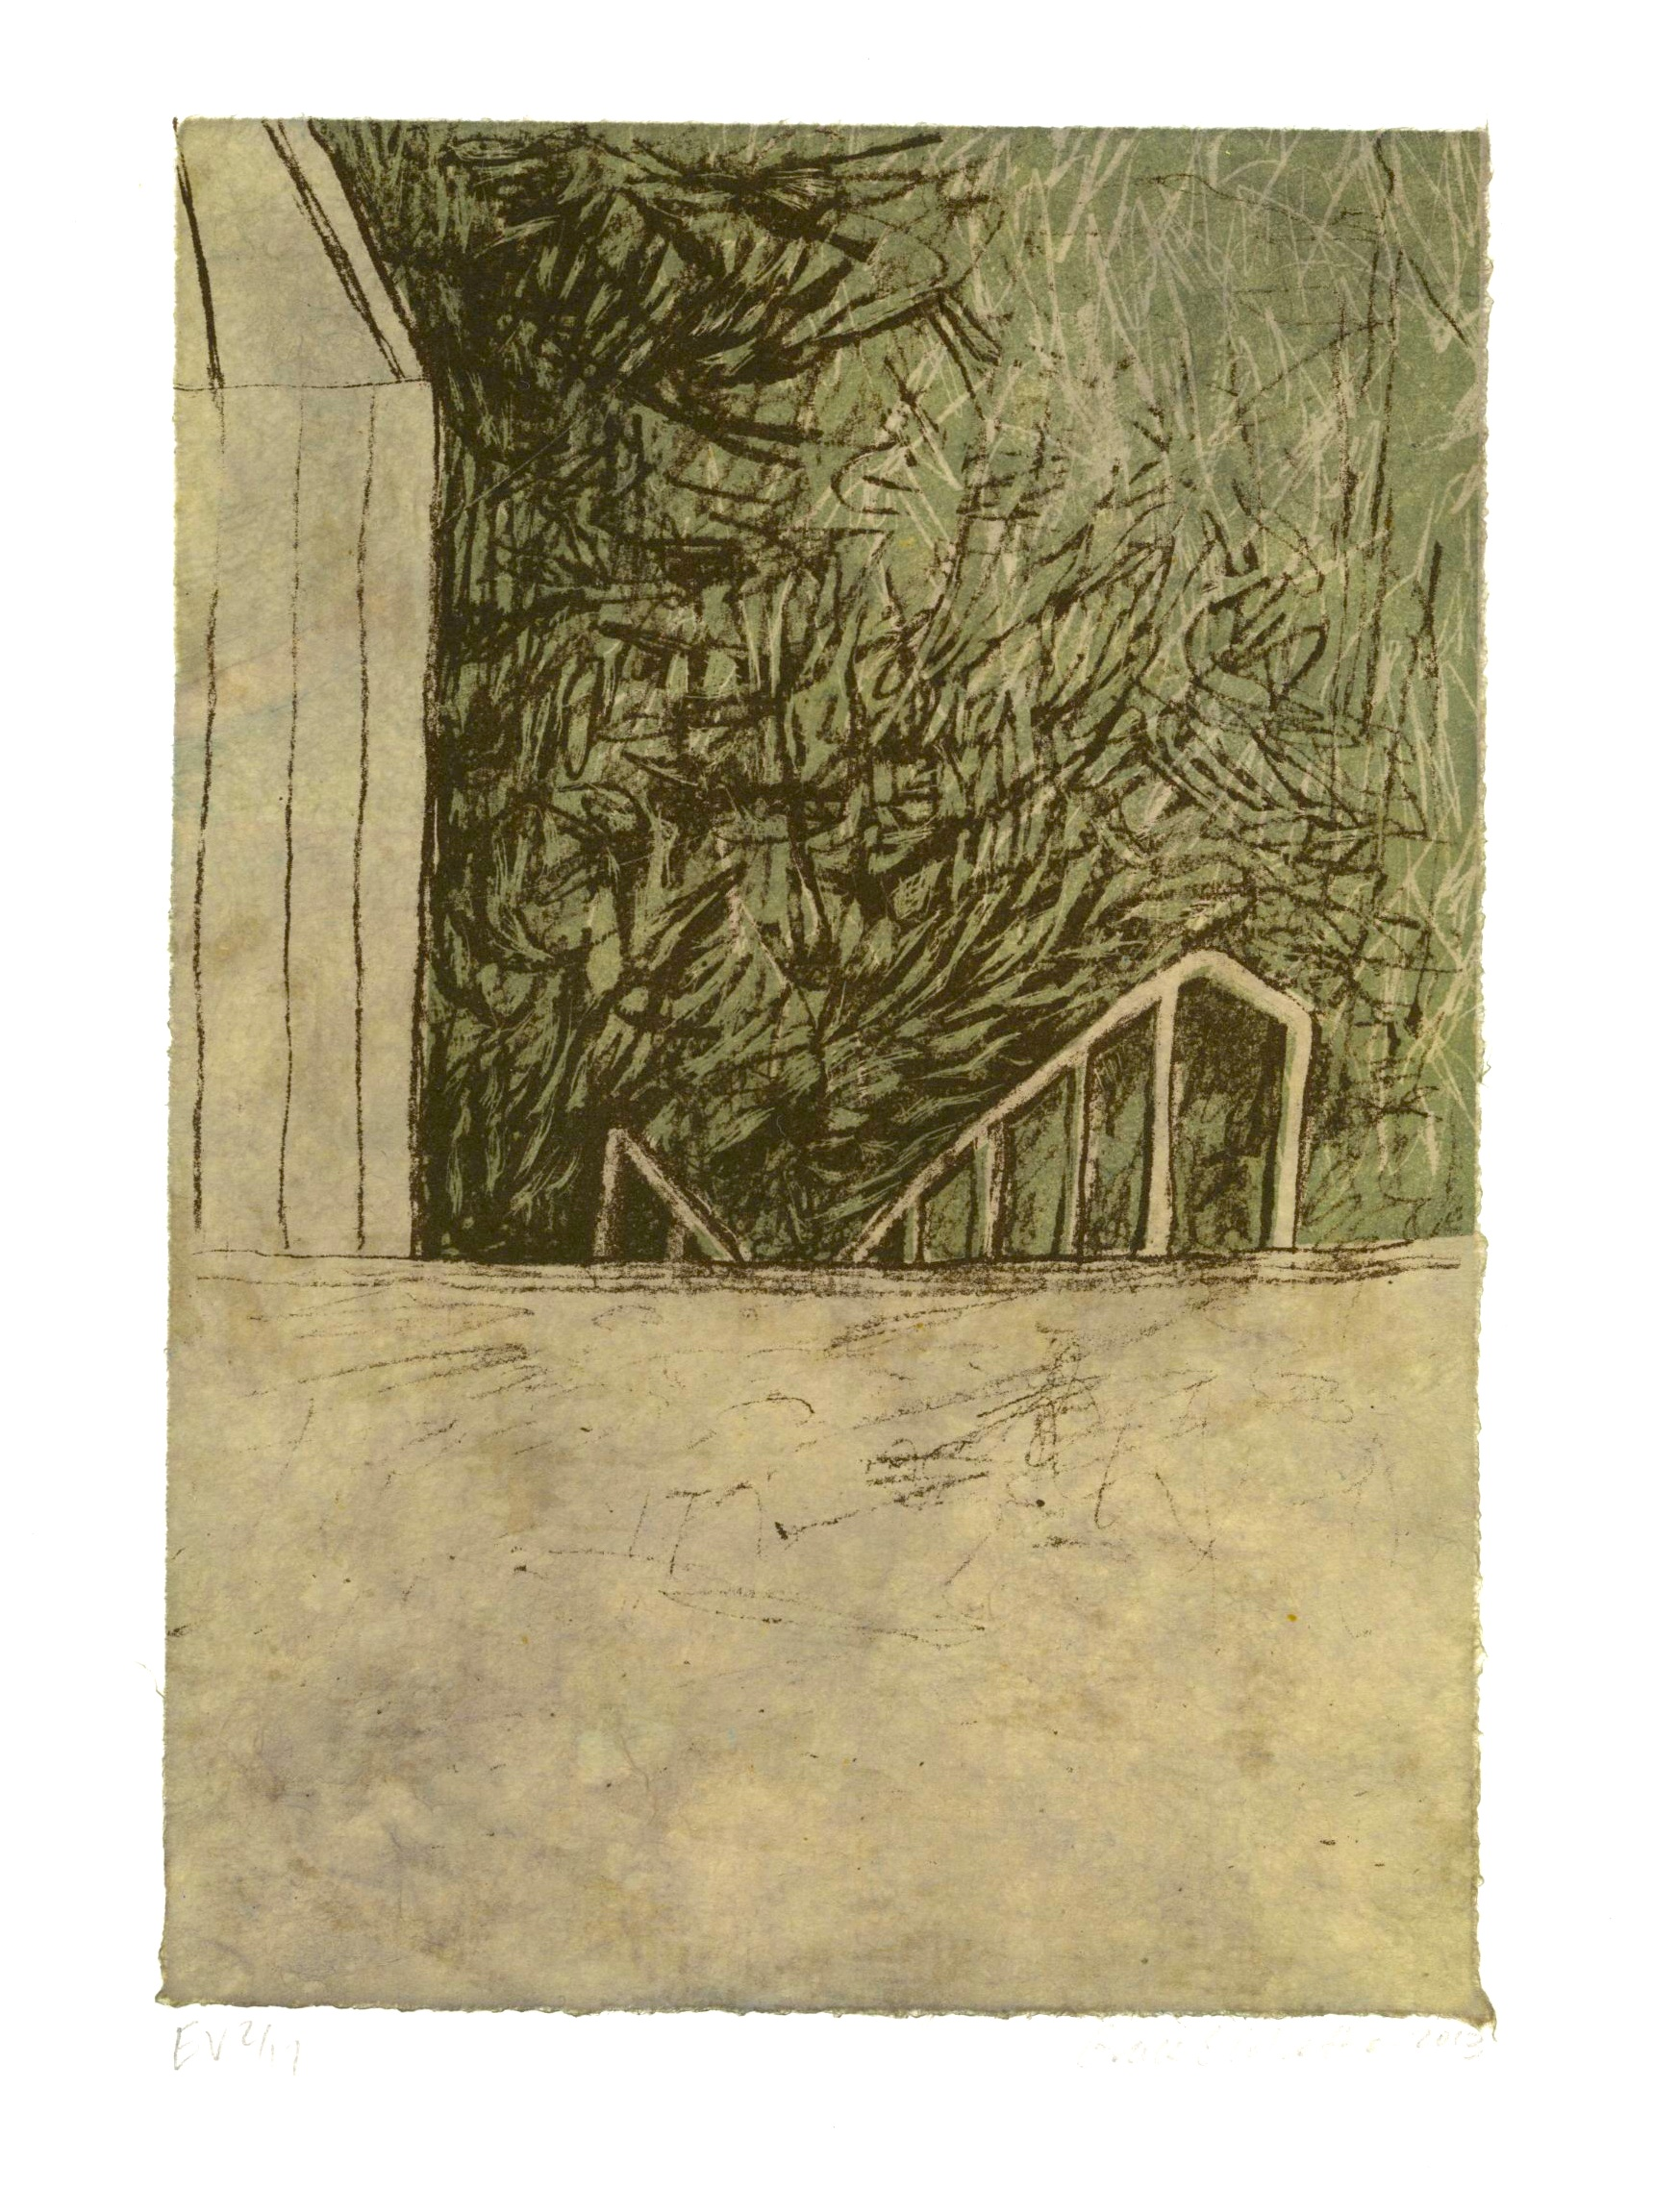 Below, Stone Lithograph with Chine-collé paper, 6 x 4 inches, 2013